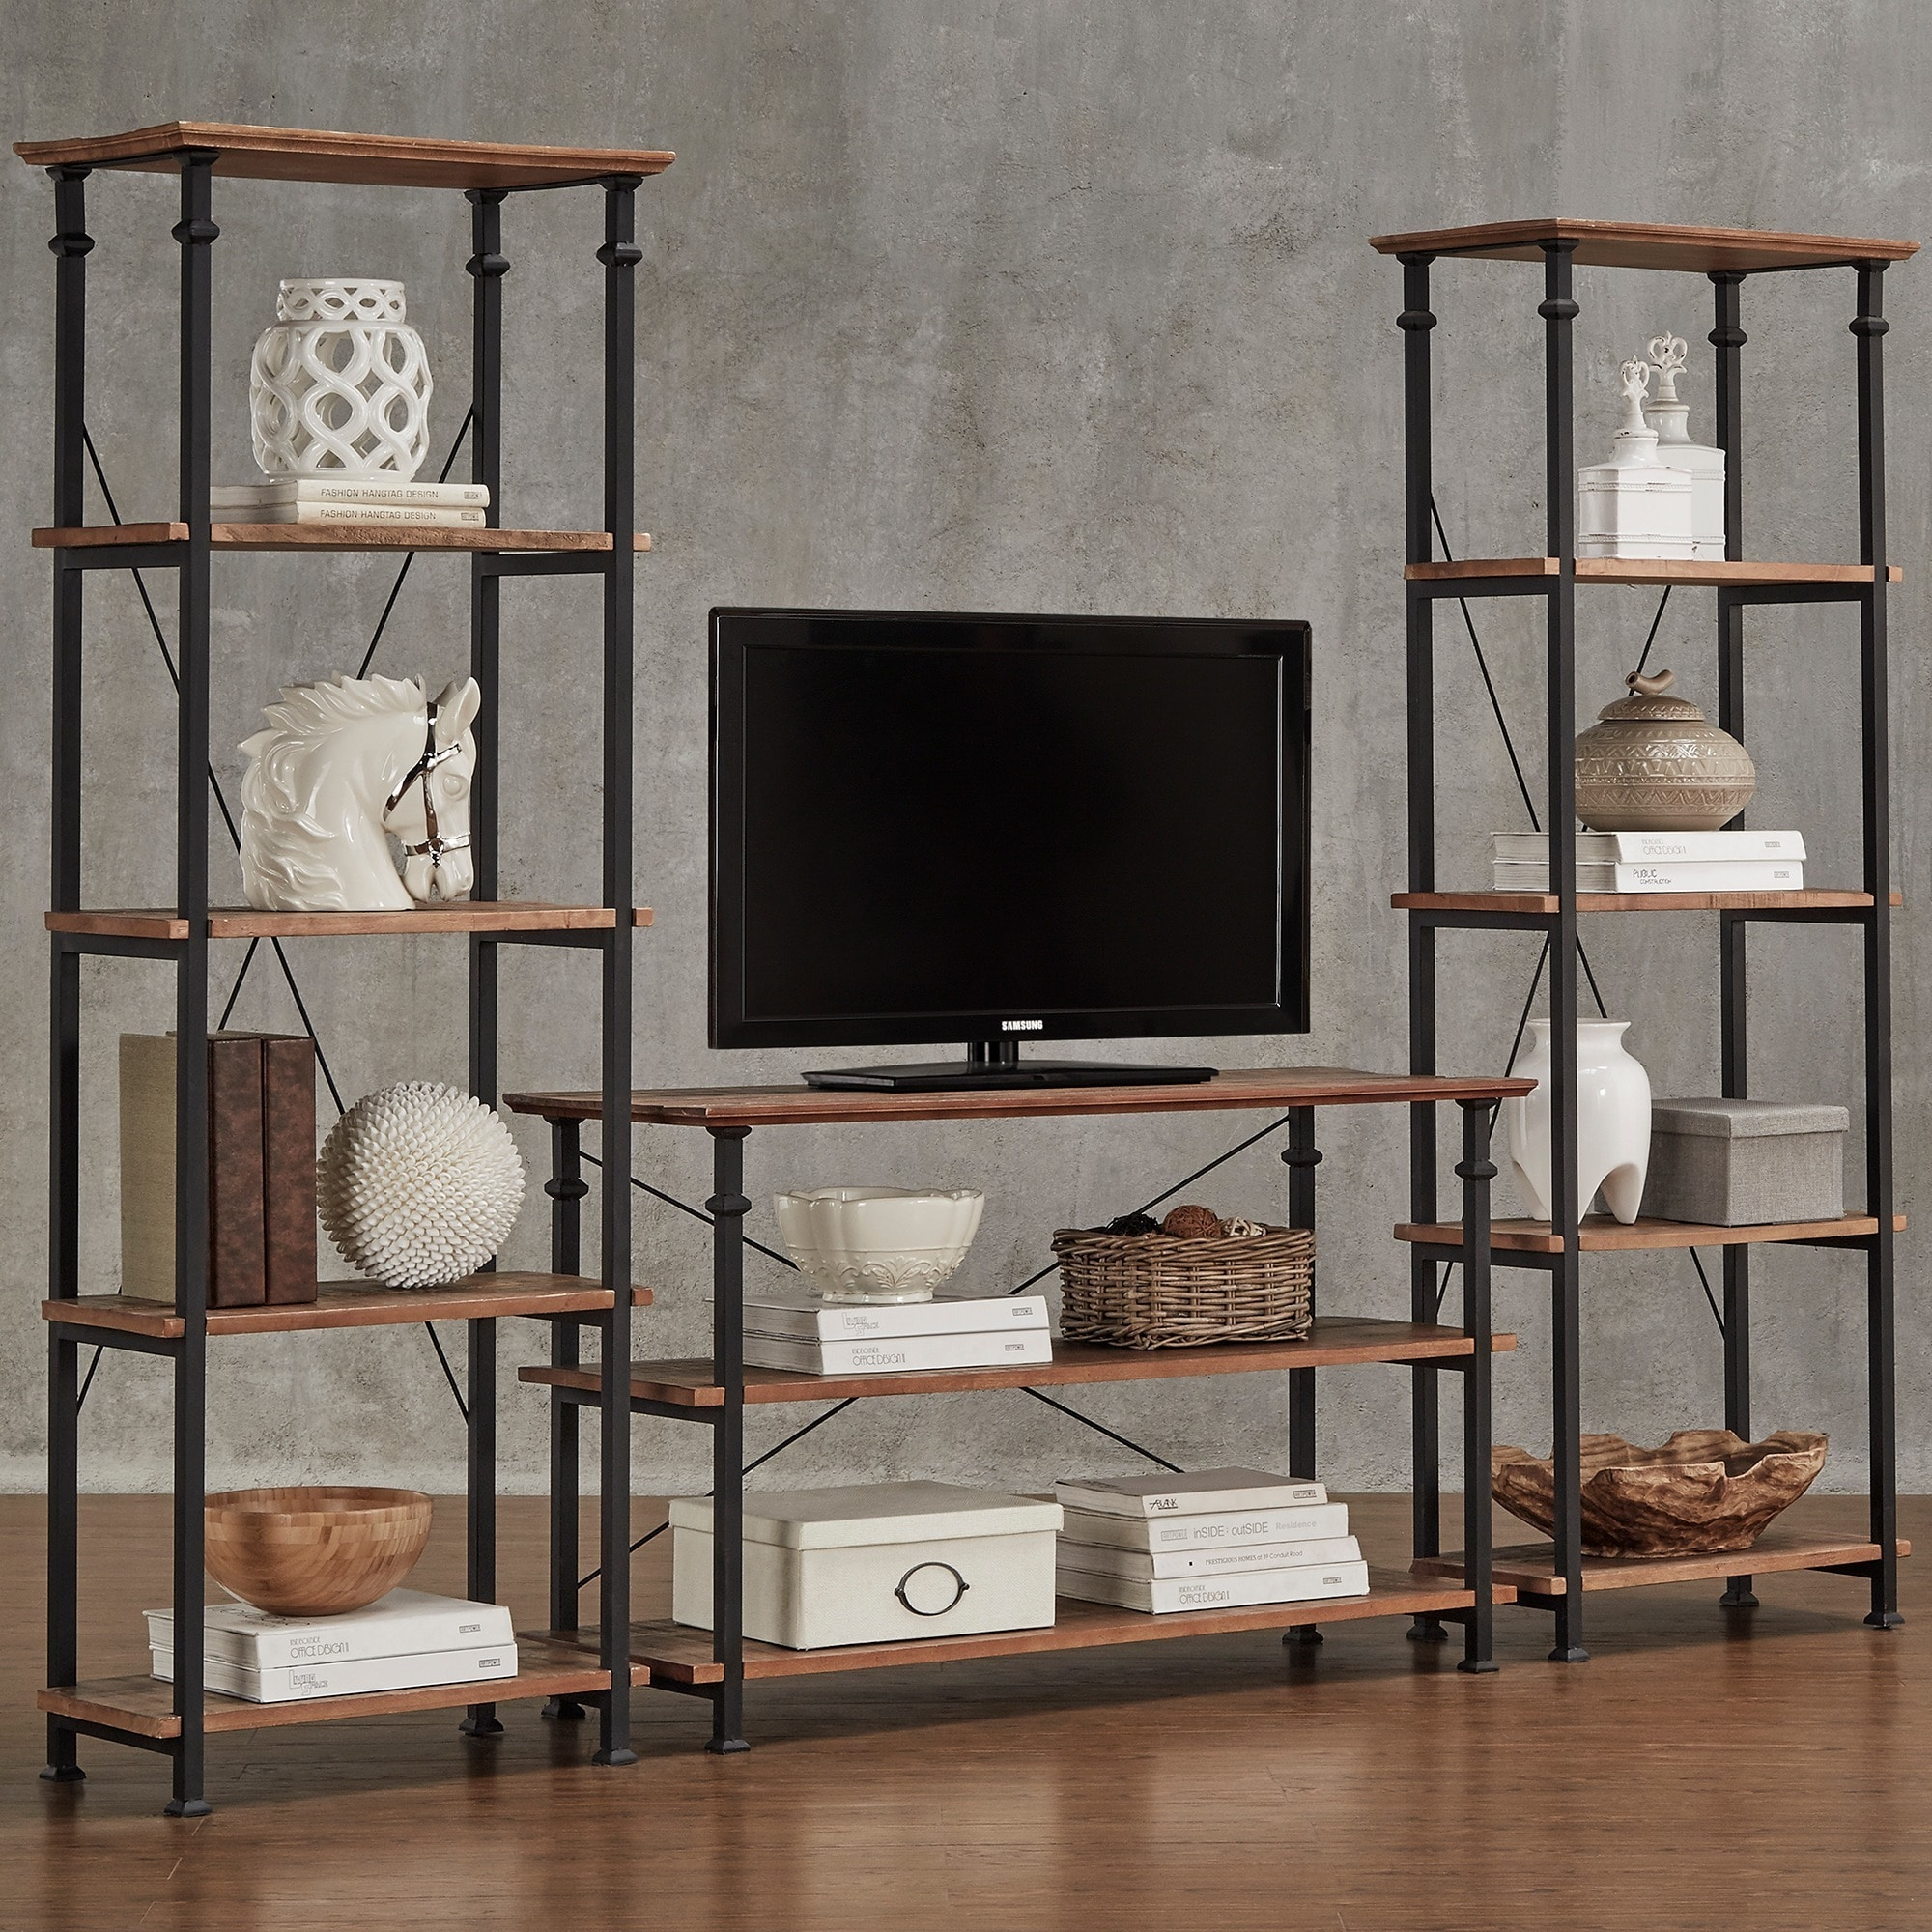 Shop Myra Vintage Industrial Modern Rustic 3 Piece Tv Stand Set By